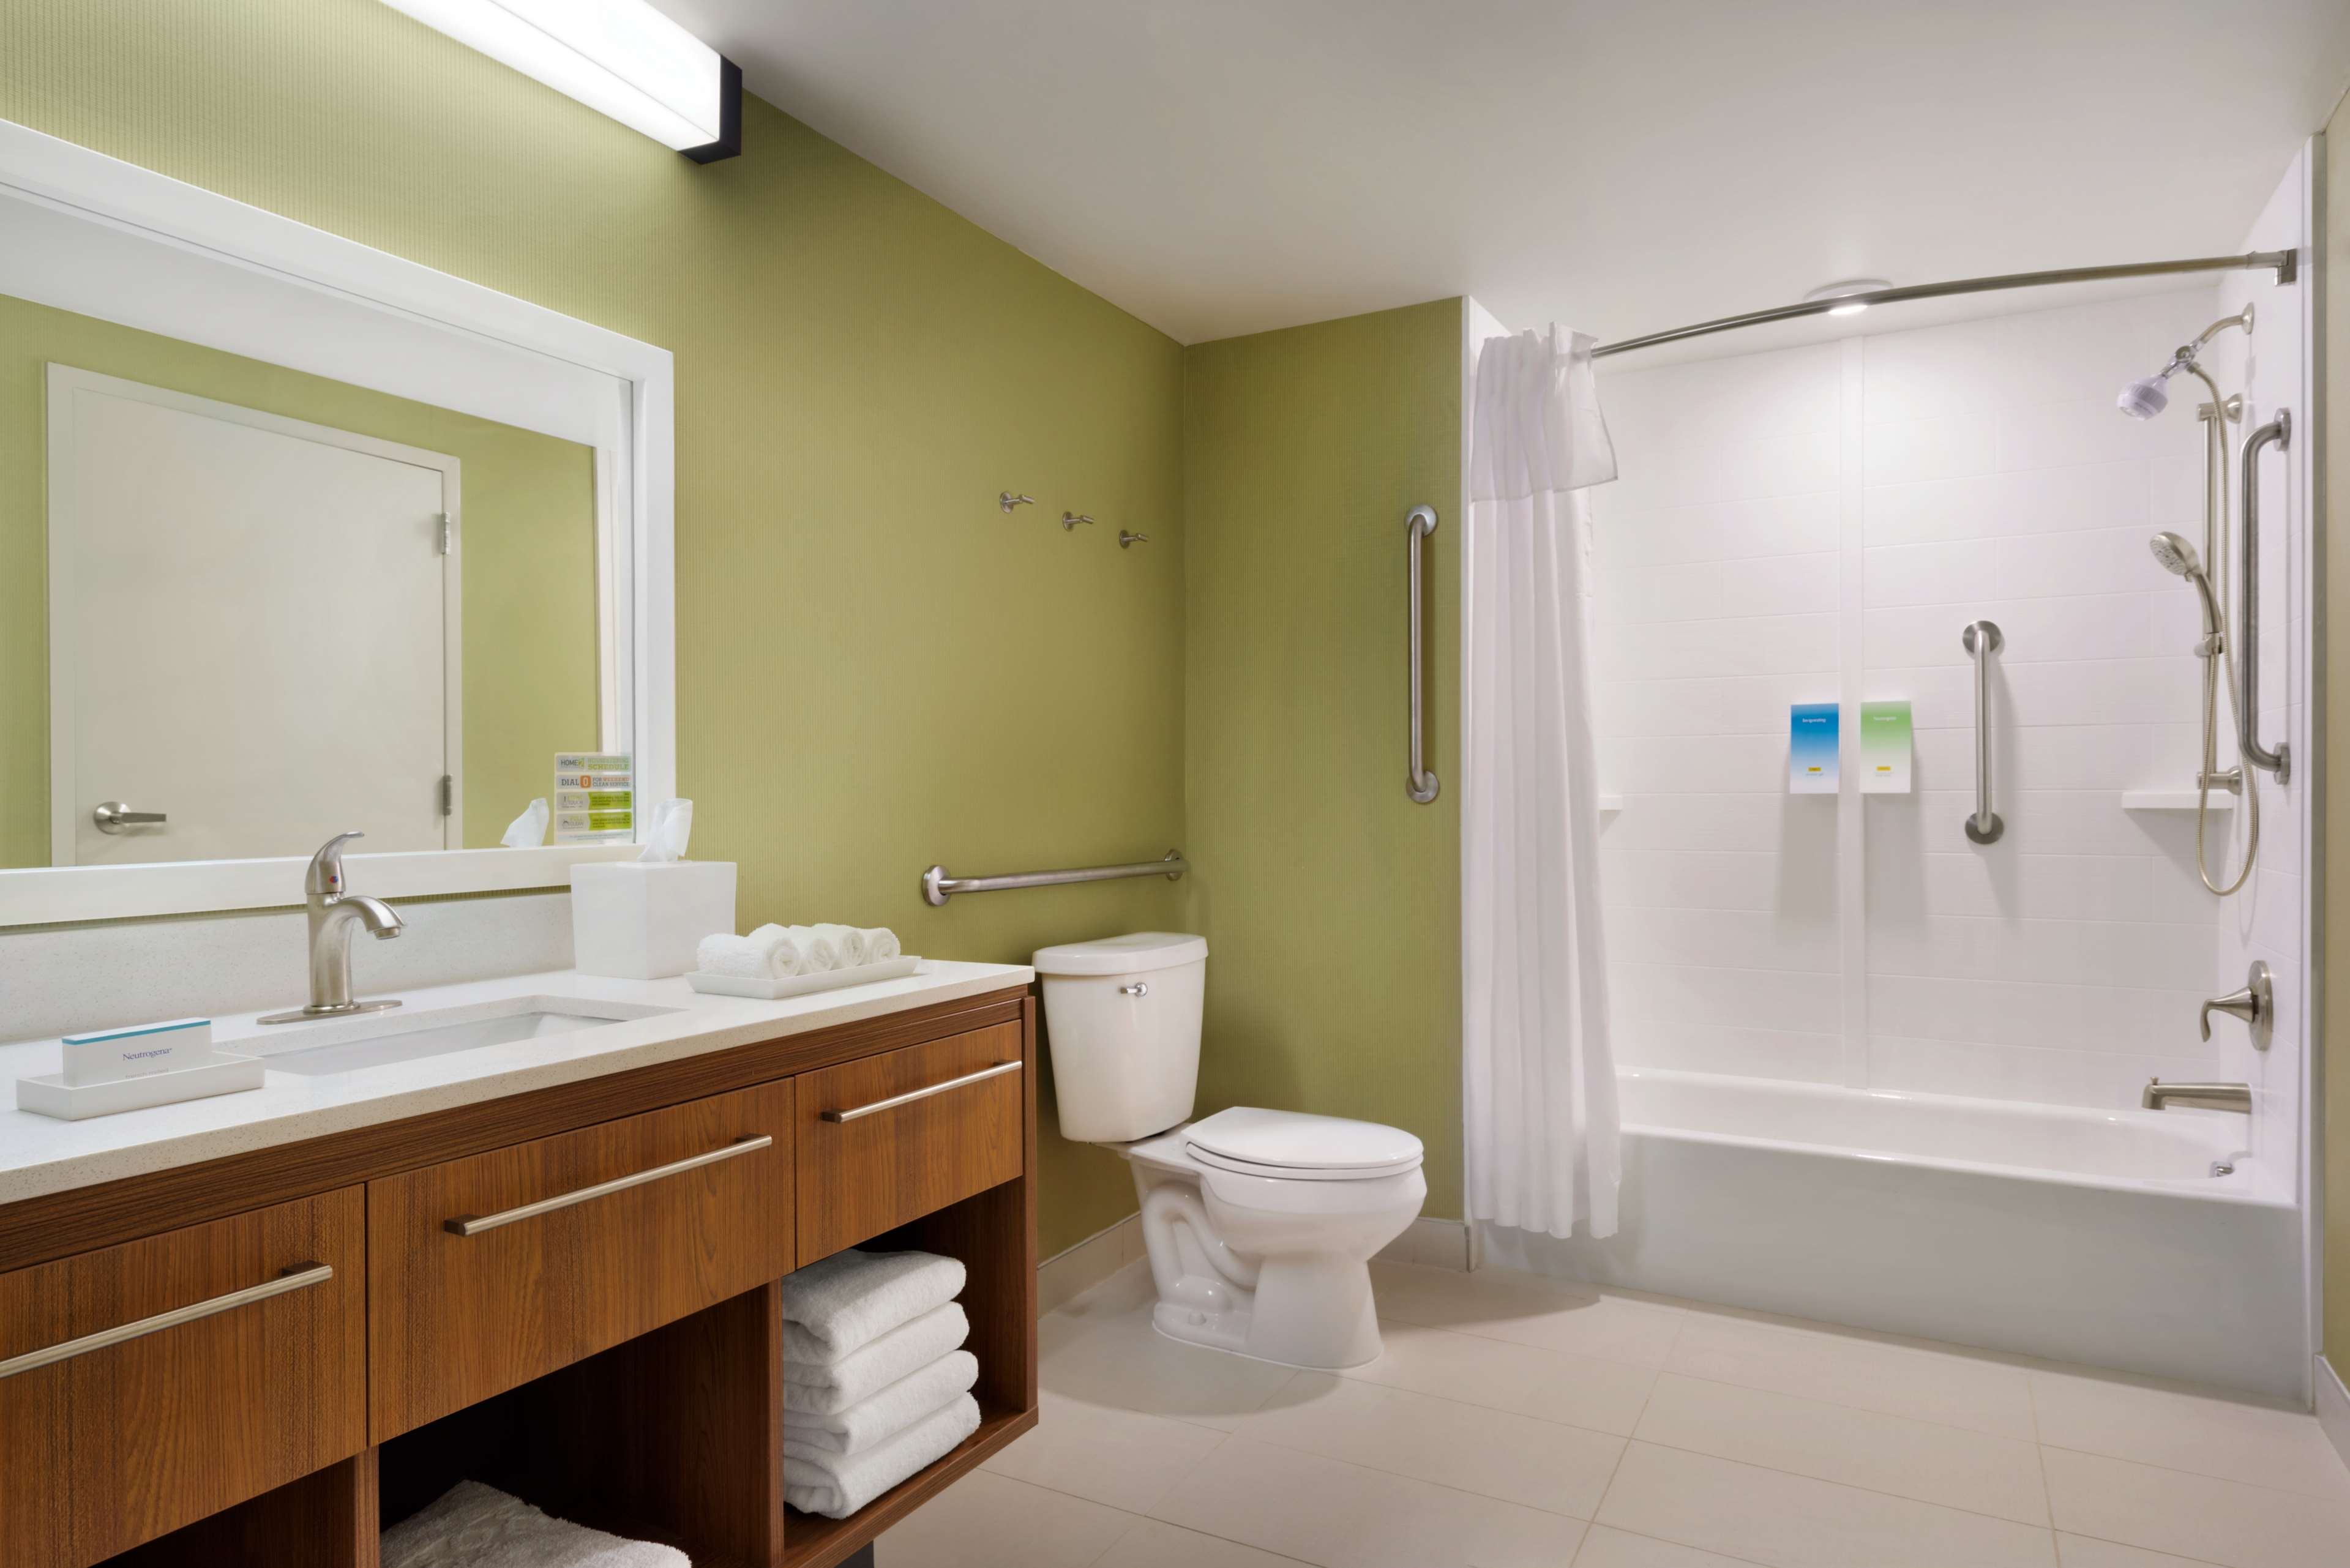 Home2 Suites by Hilton Roanoke image 23